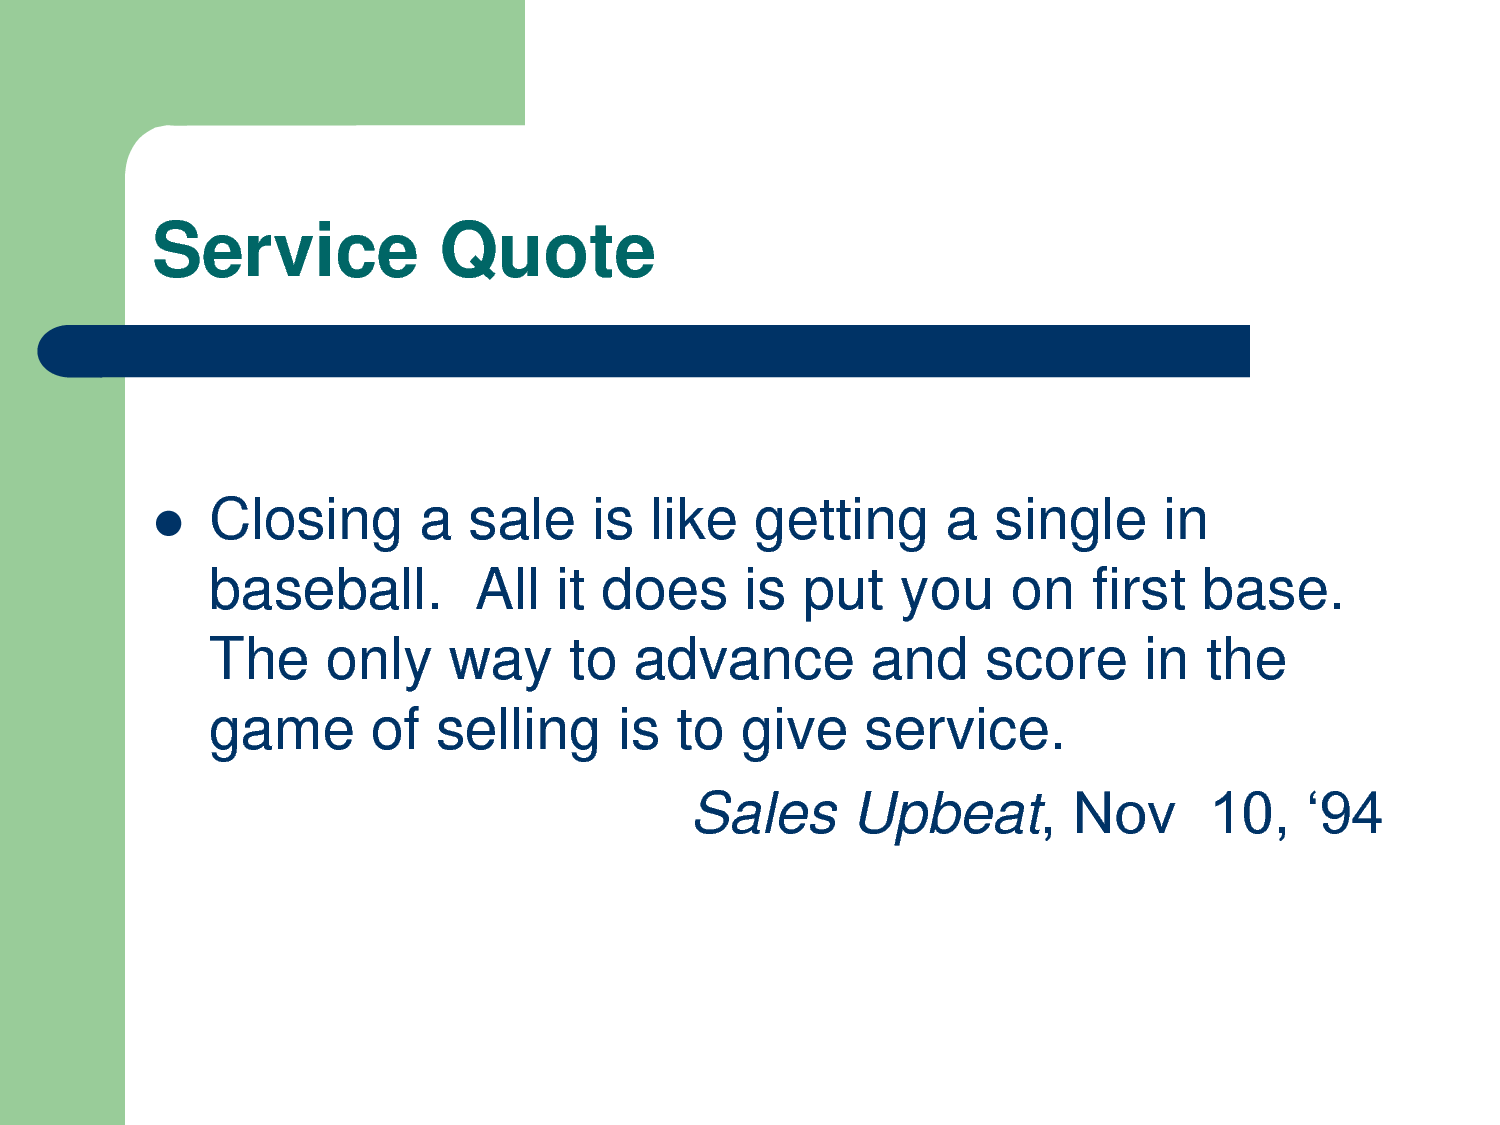 Closing a Sale Is Like Getting a Single In Baseball. All It Does Is Put You On First Base. The Only Way To Advance And Score In The Game Of Salling Is To Give Service